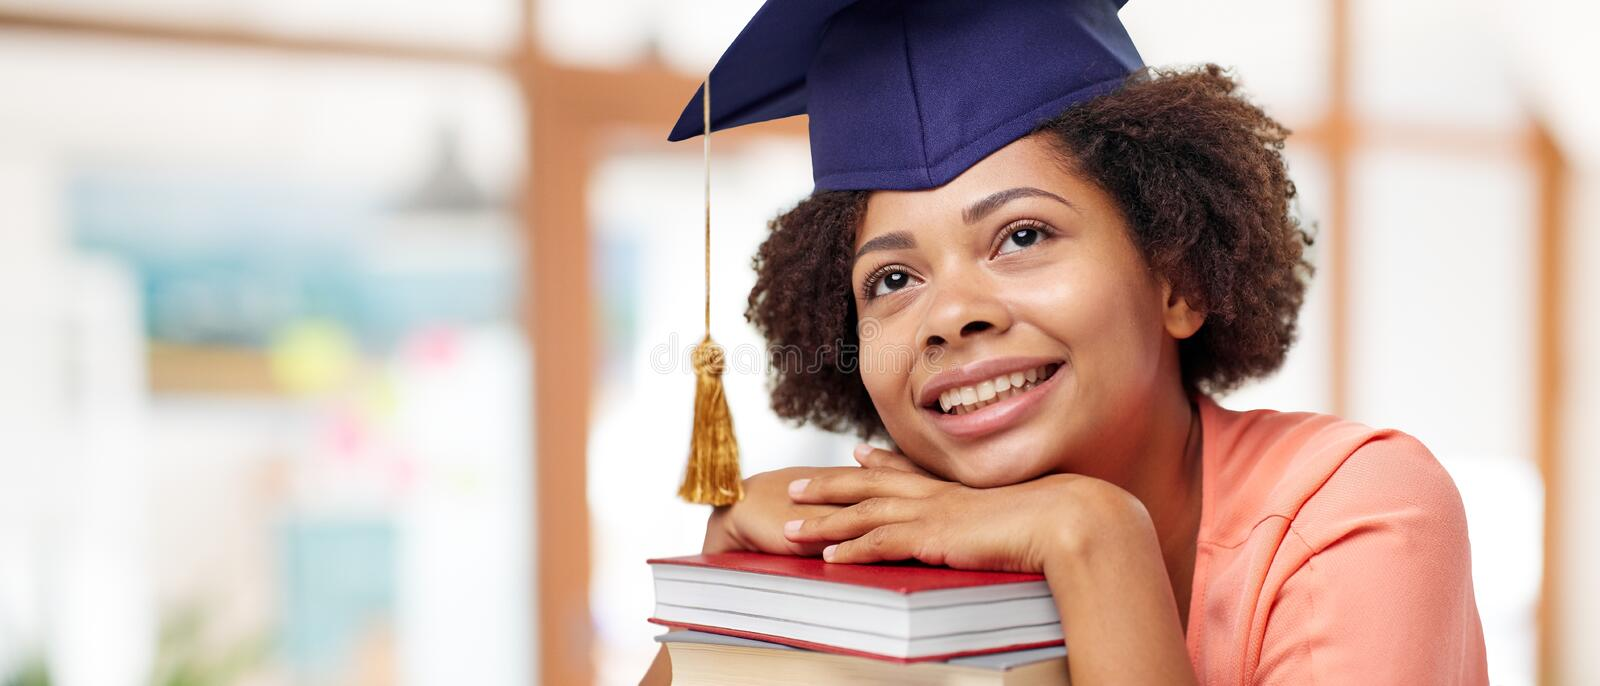 African american graduate student with books. Education, graduation and knowledge concept - happy smiling african american graduate student girl in bachelor cap royalty free stock photography